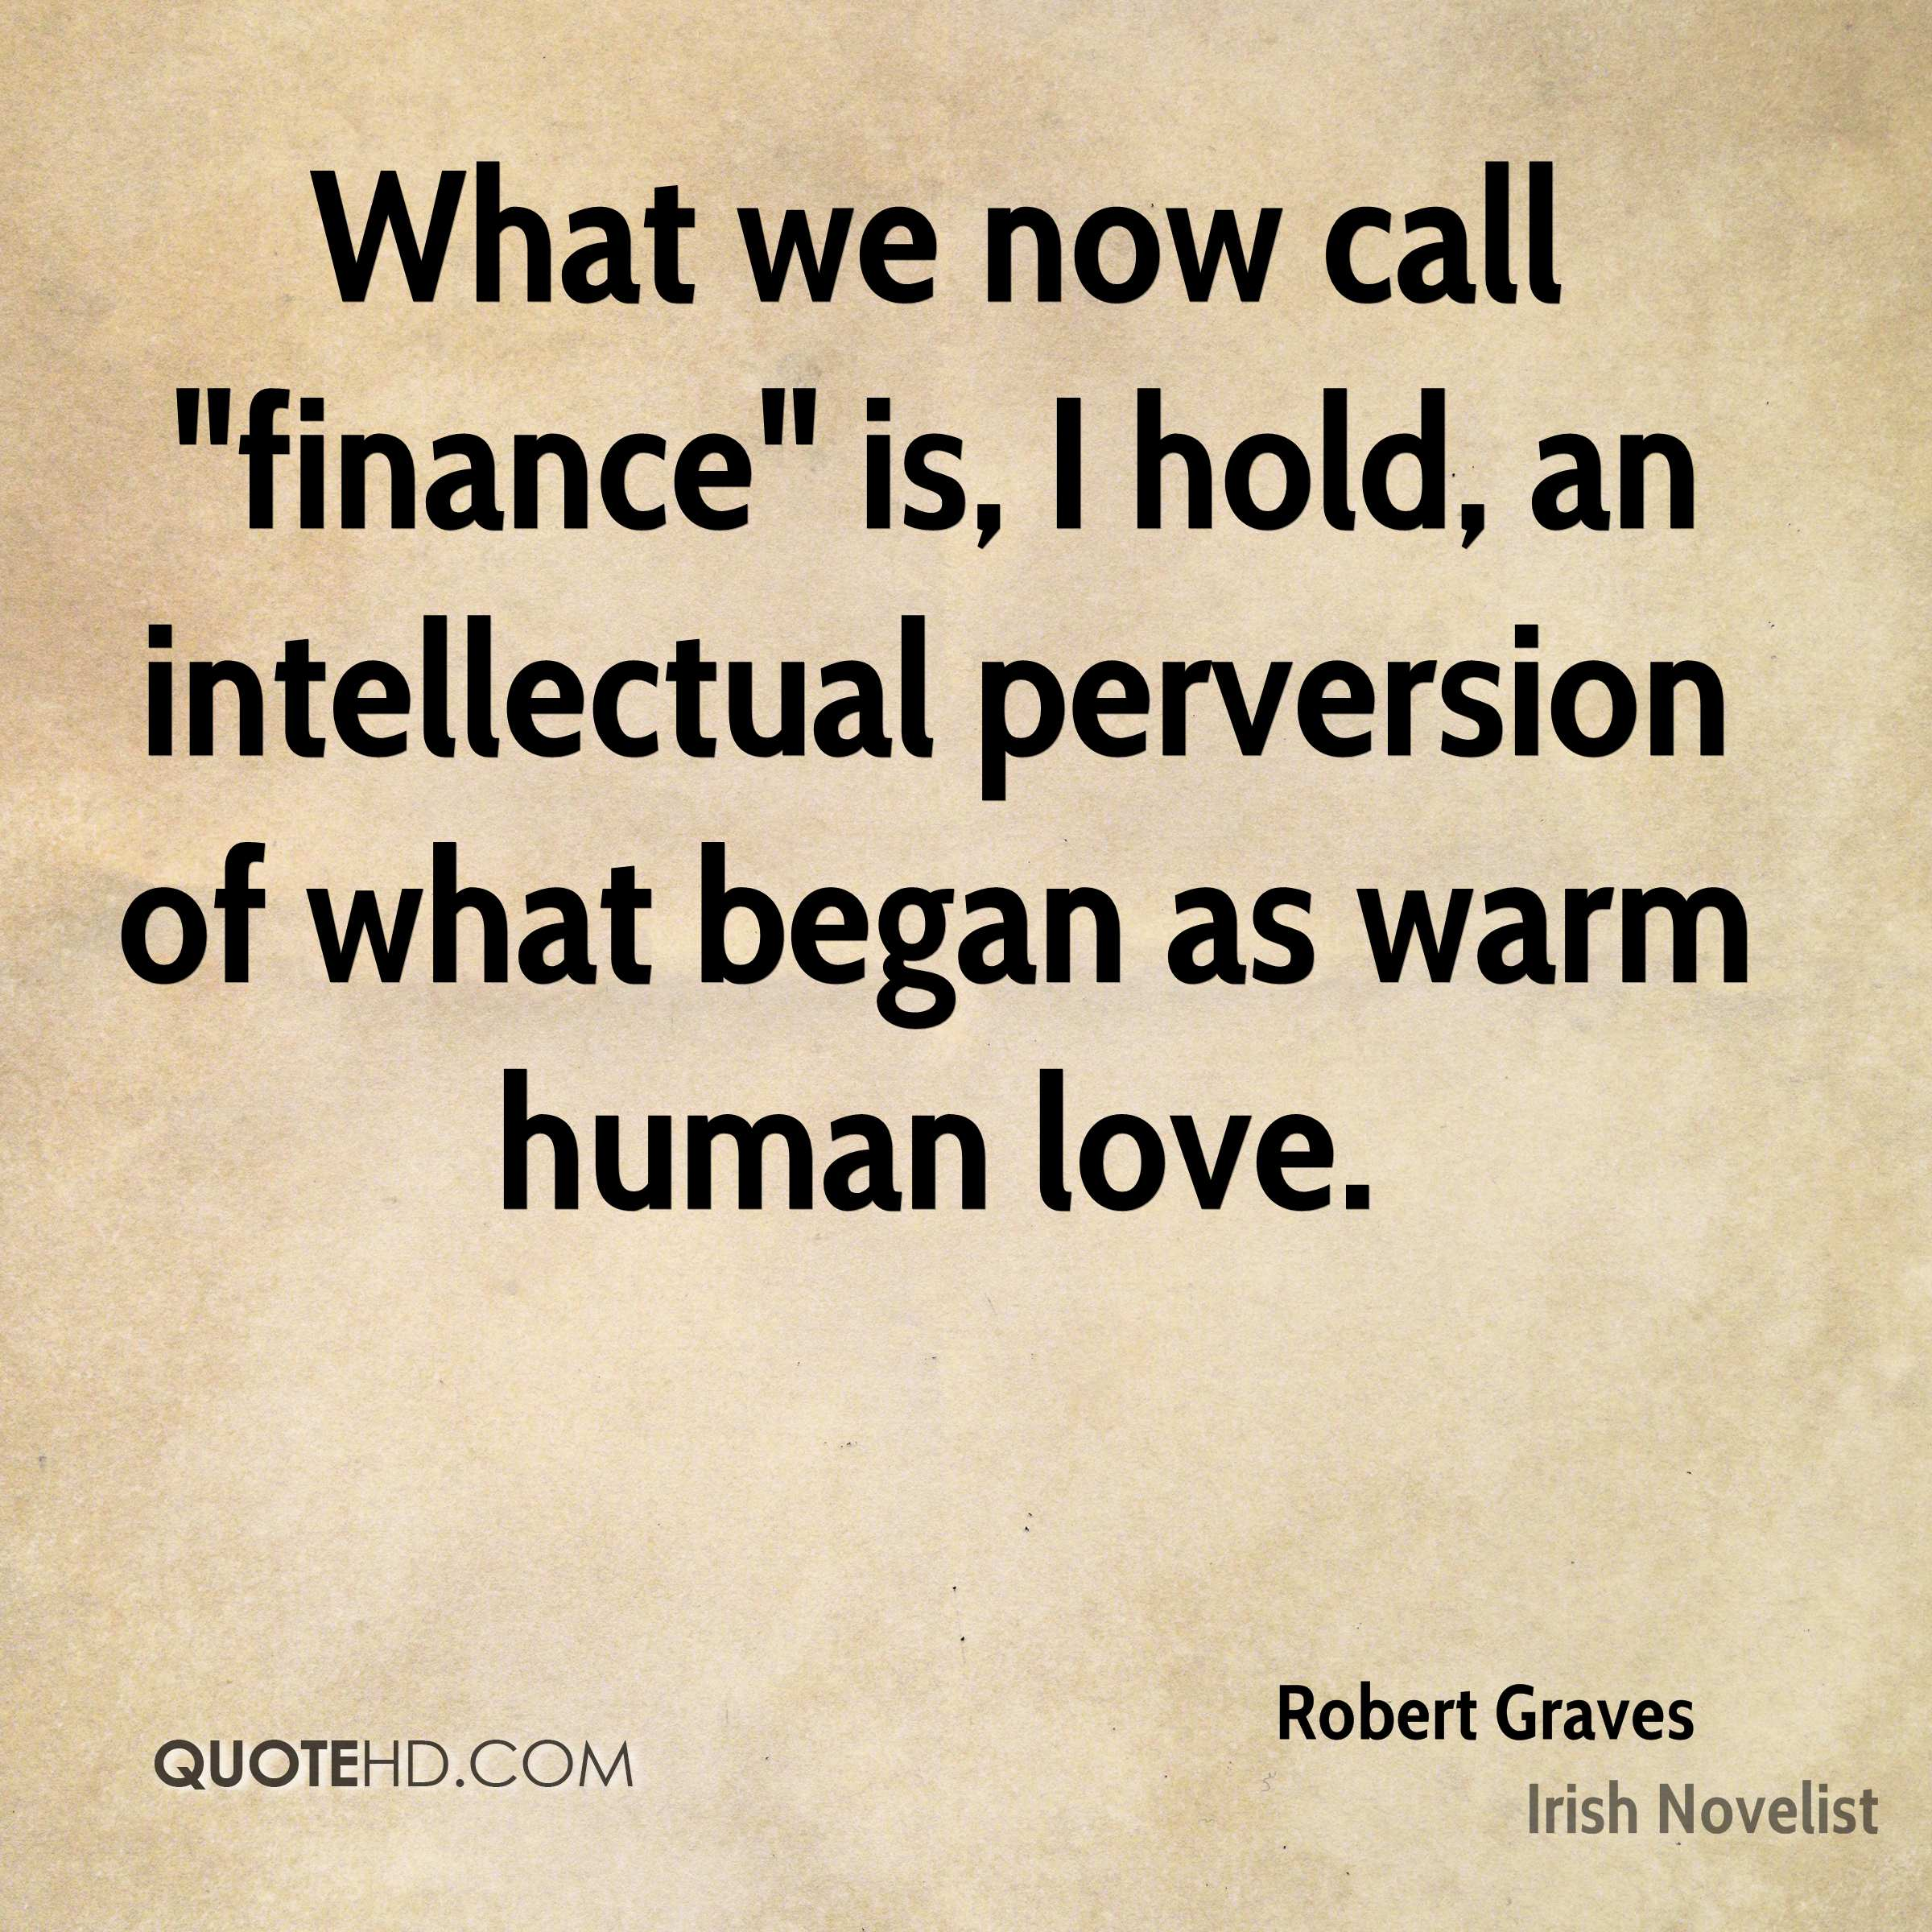 """What we now call """"finance"""" is, I hold, an intellectual perversion of what began as warm human love."""